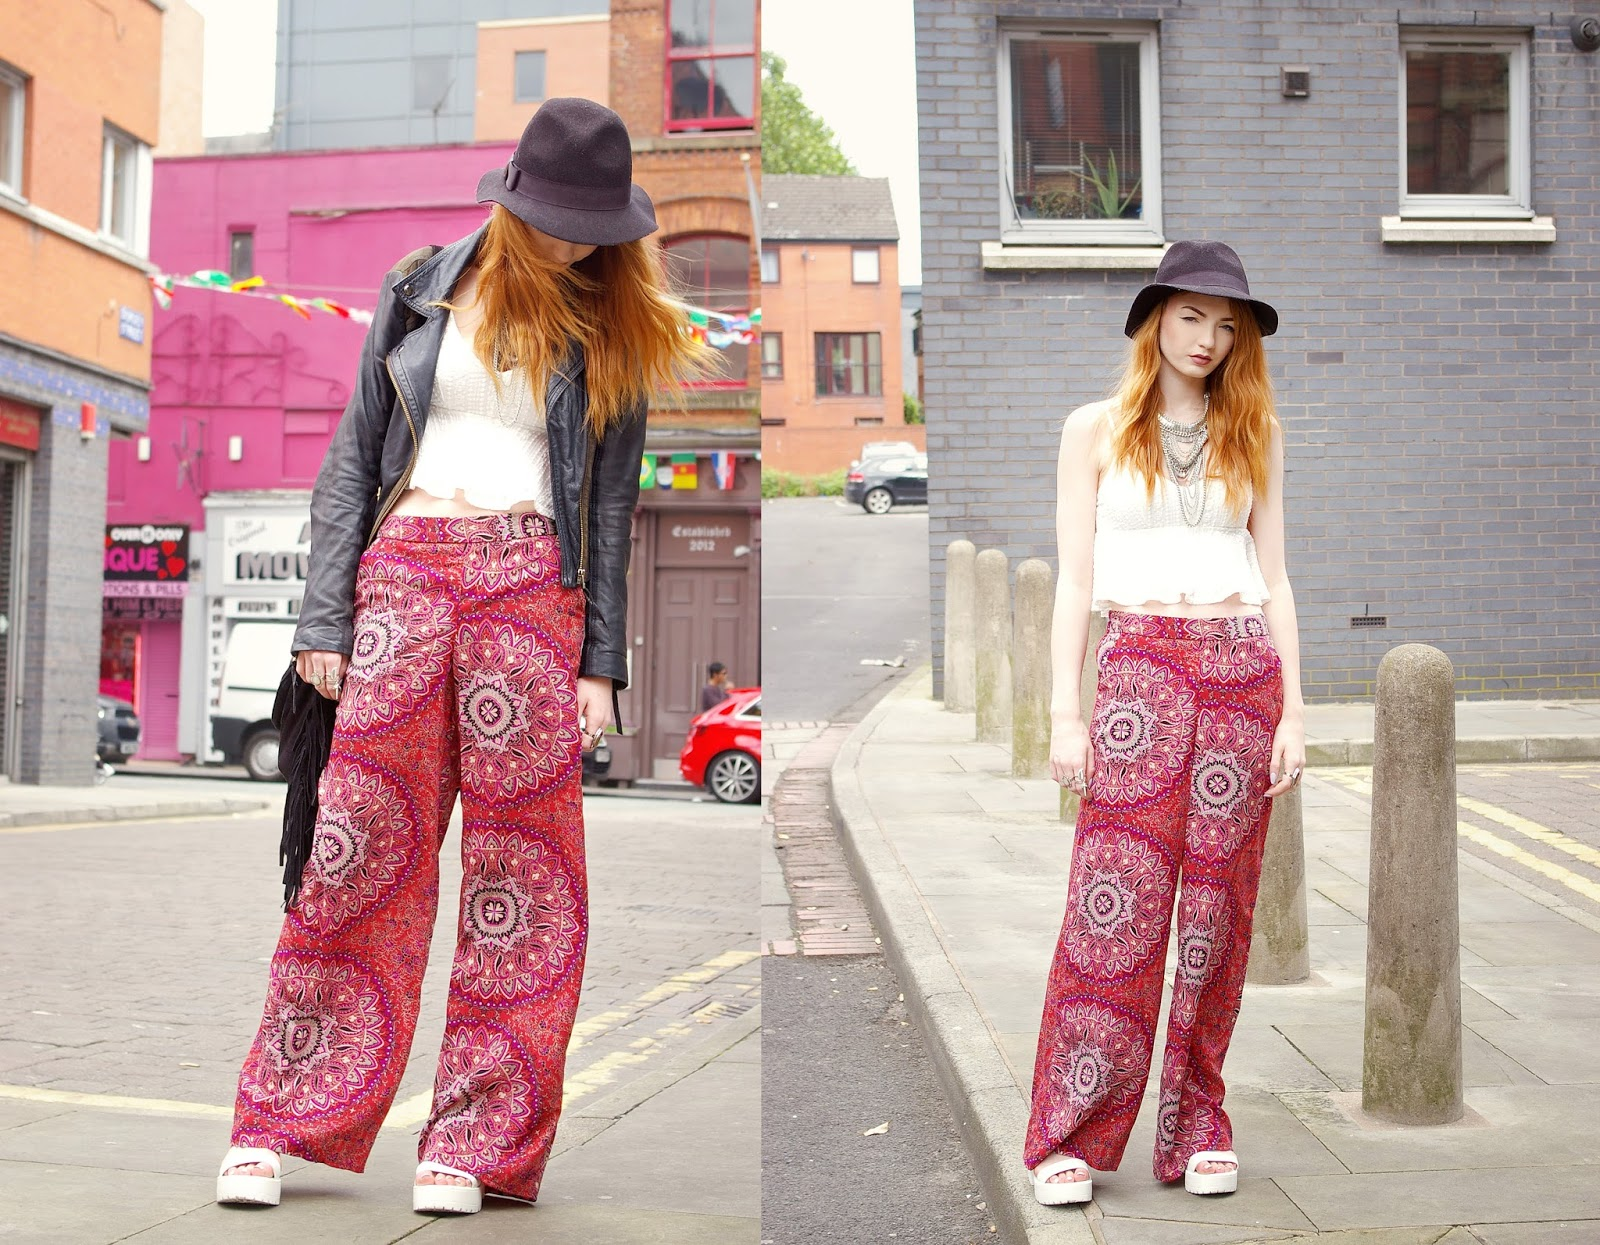 15f80e45a8e Top – Topshop | Trousers – Primark | Shoes – My1stwish* | Jacket – Topshop  | Necklace – Primark | Bag – BANK* (similar) | Hat – Missguided*